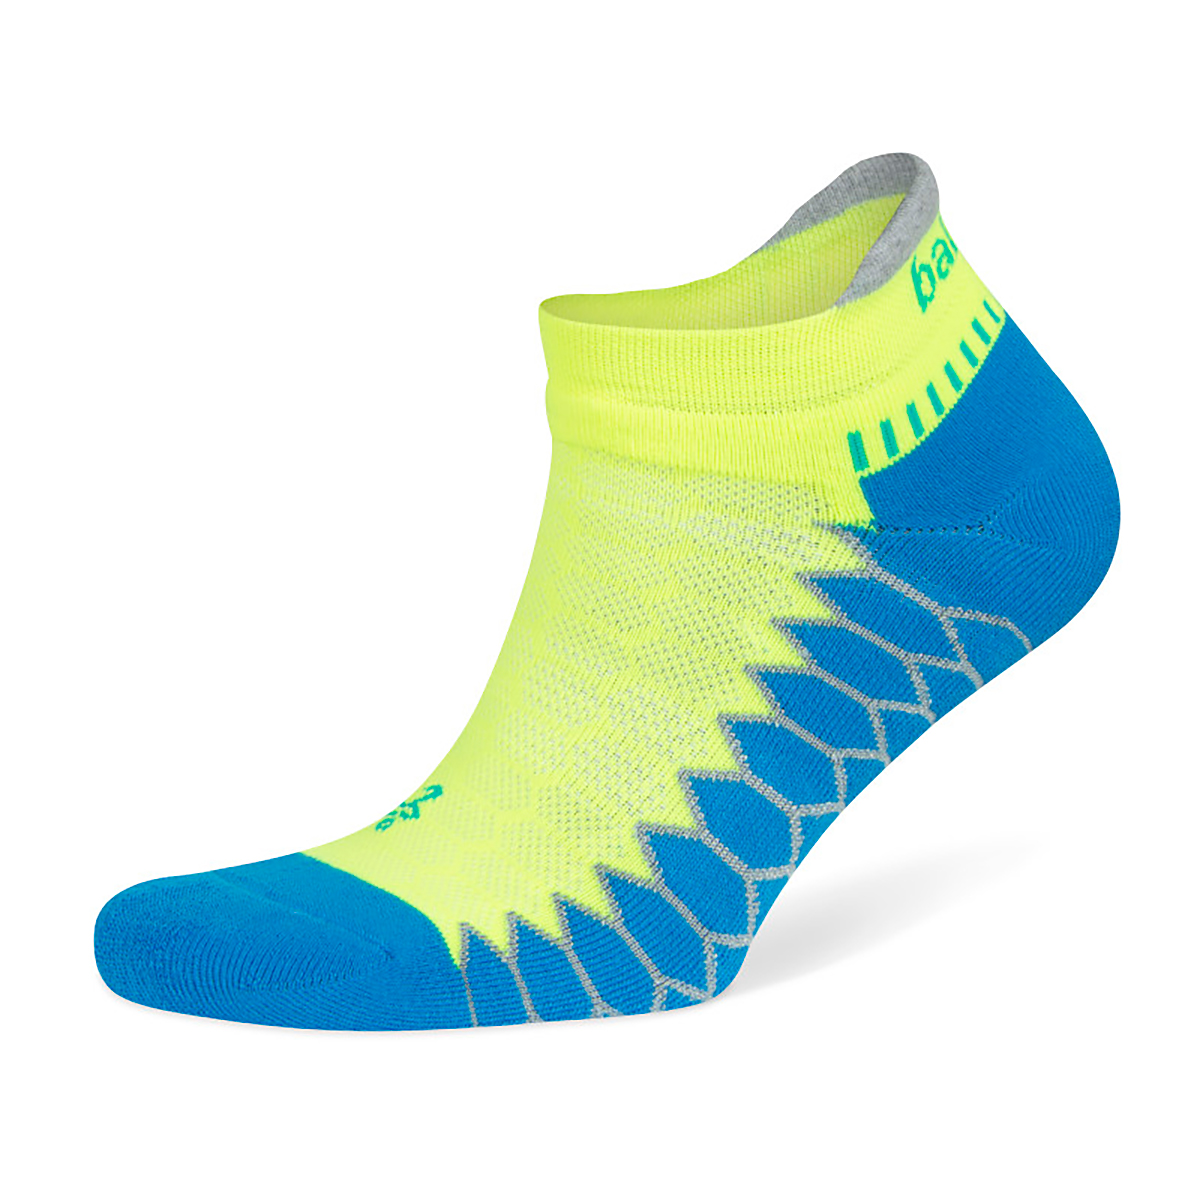 Balega Silver No Show Socks - Color: Bright Turquoise/Neon Lime Size: S, Blue, large, image 1